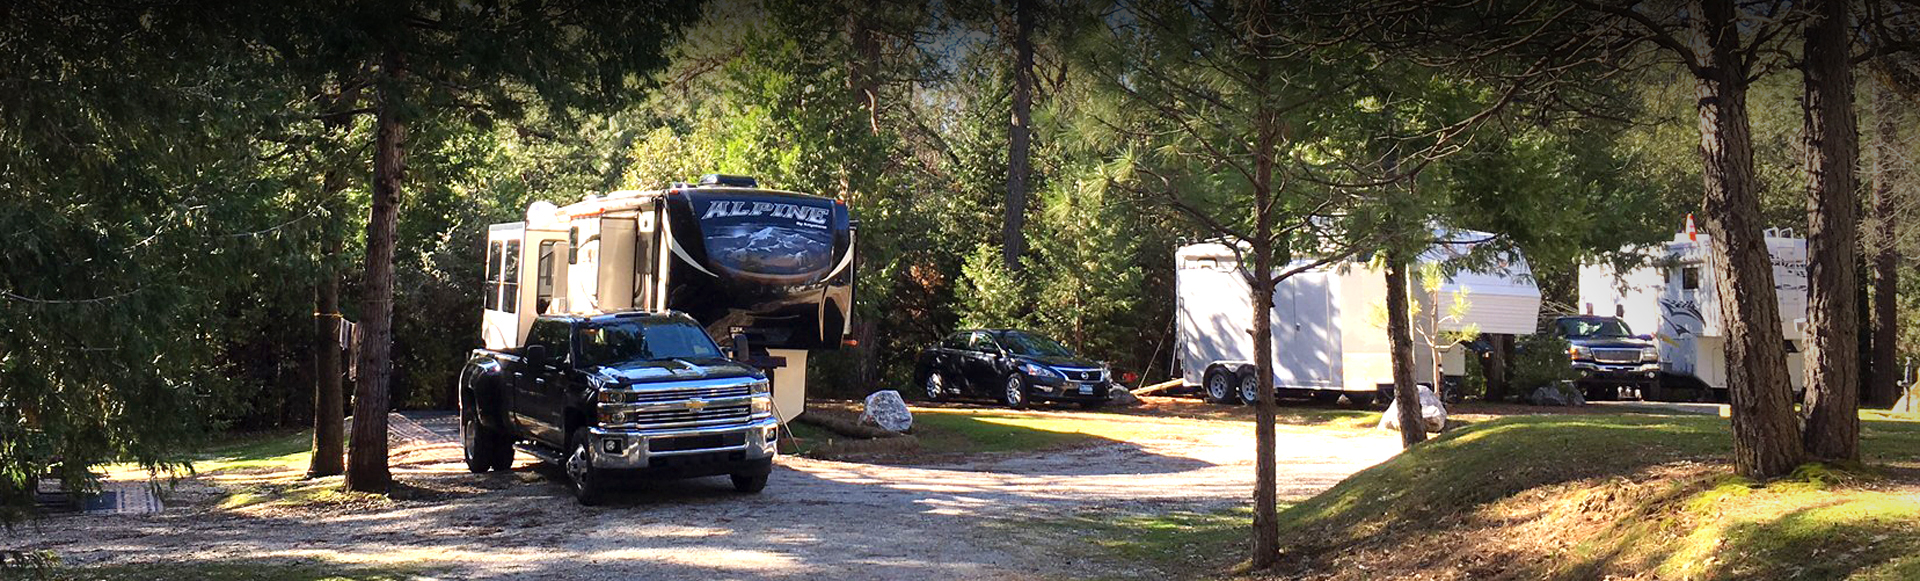 Gold Country Campground Resort | Pine Grove RV Camping